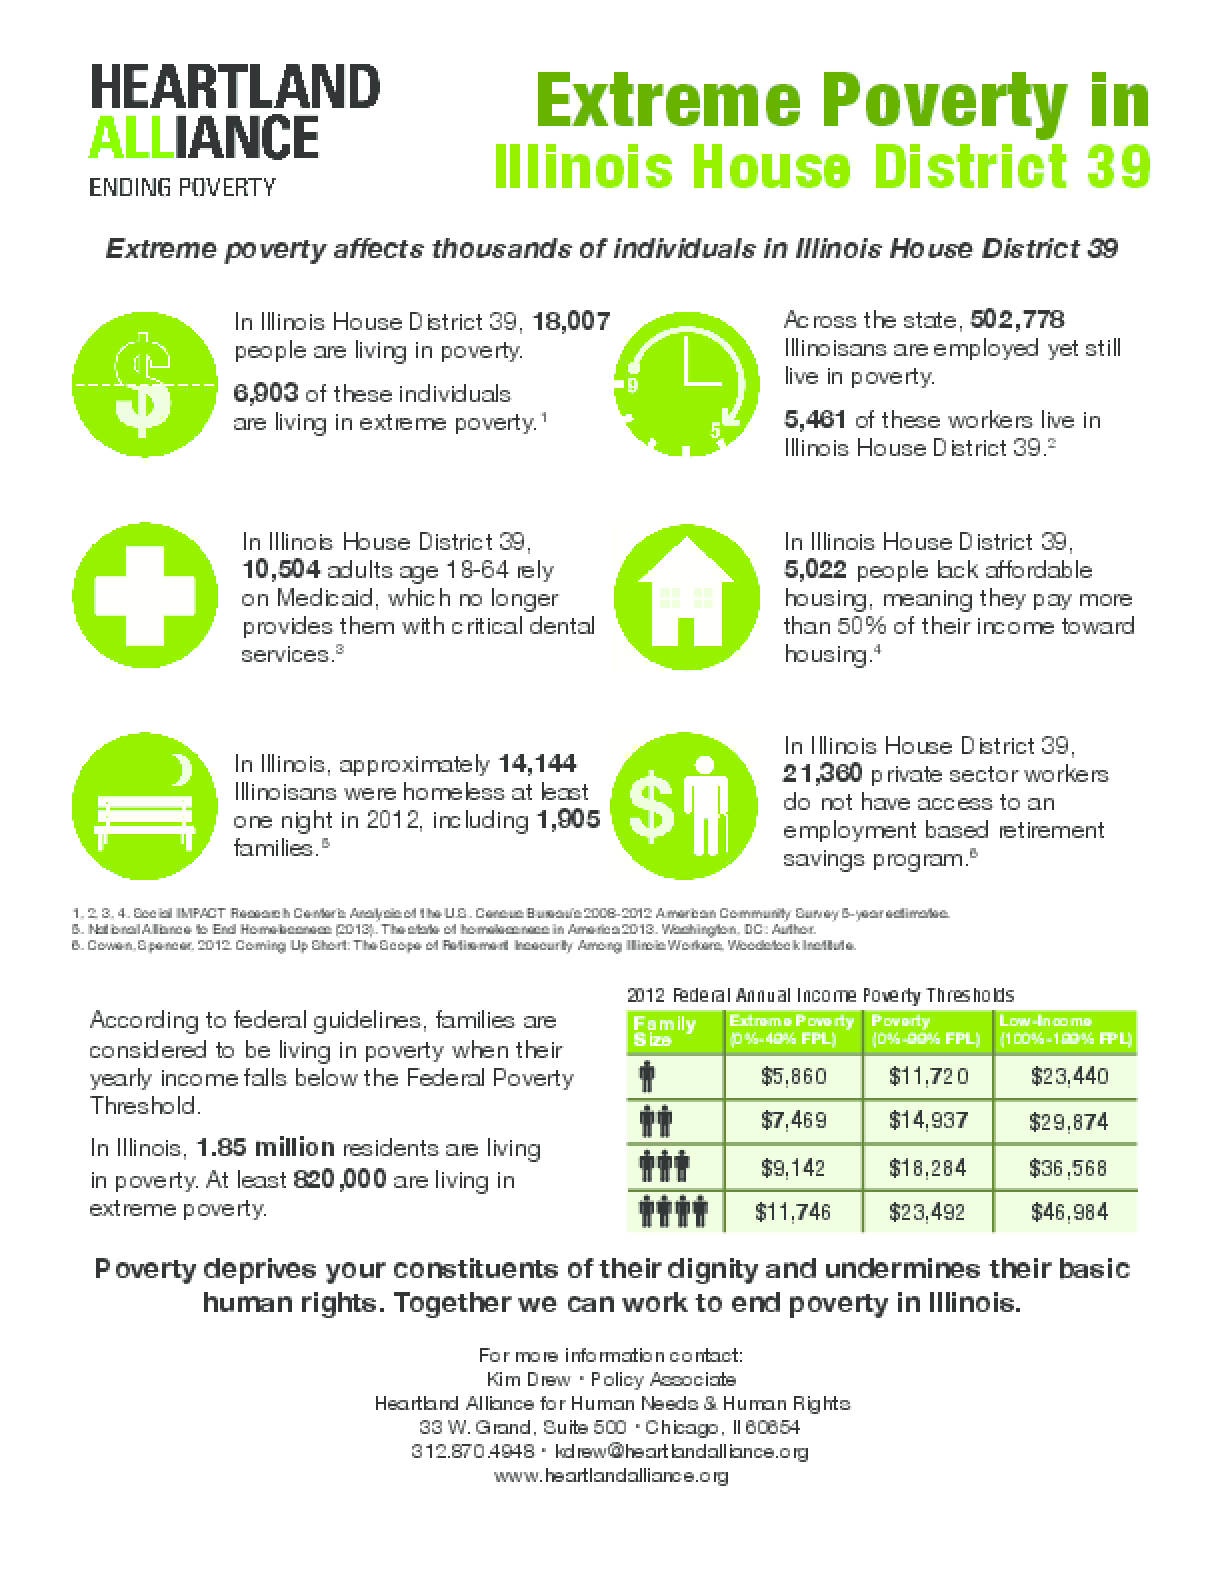 Poverty Fact Sheets for Illinois House District 39